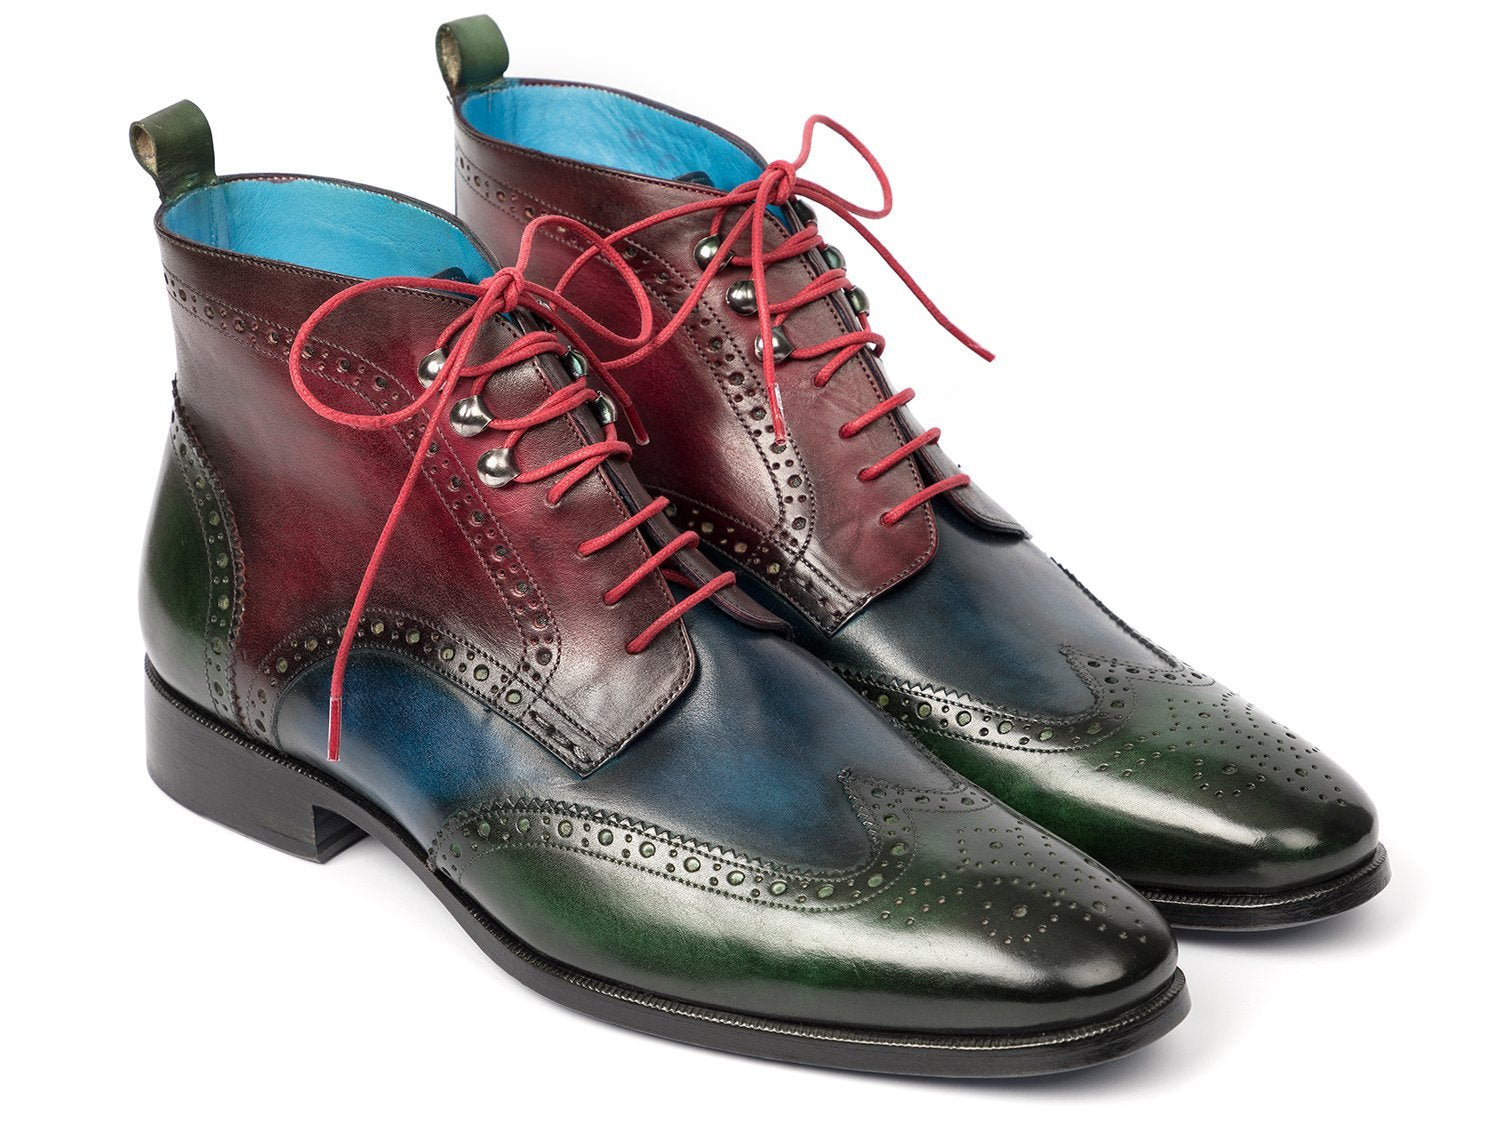 Paul Parkman Wingtip Ankle Boots Three Tone Green Blue Bordeaux (ID#777-GRN-BLU)